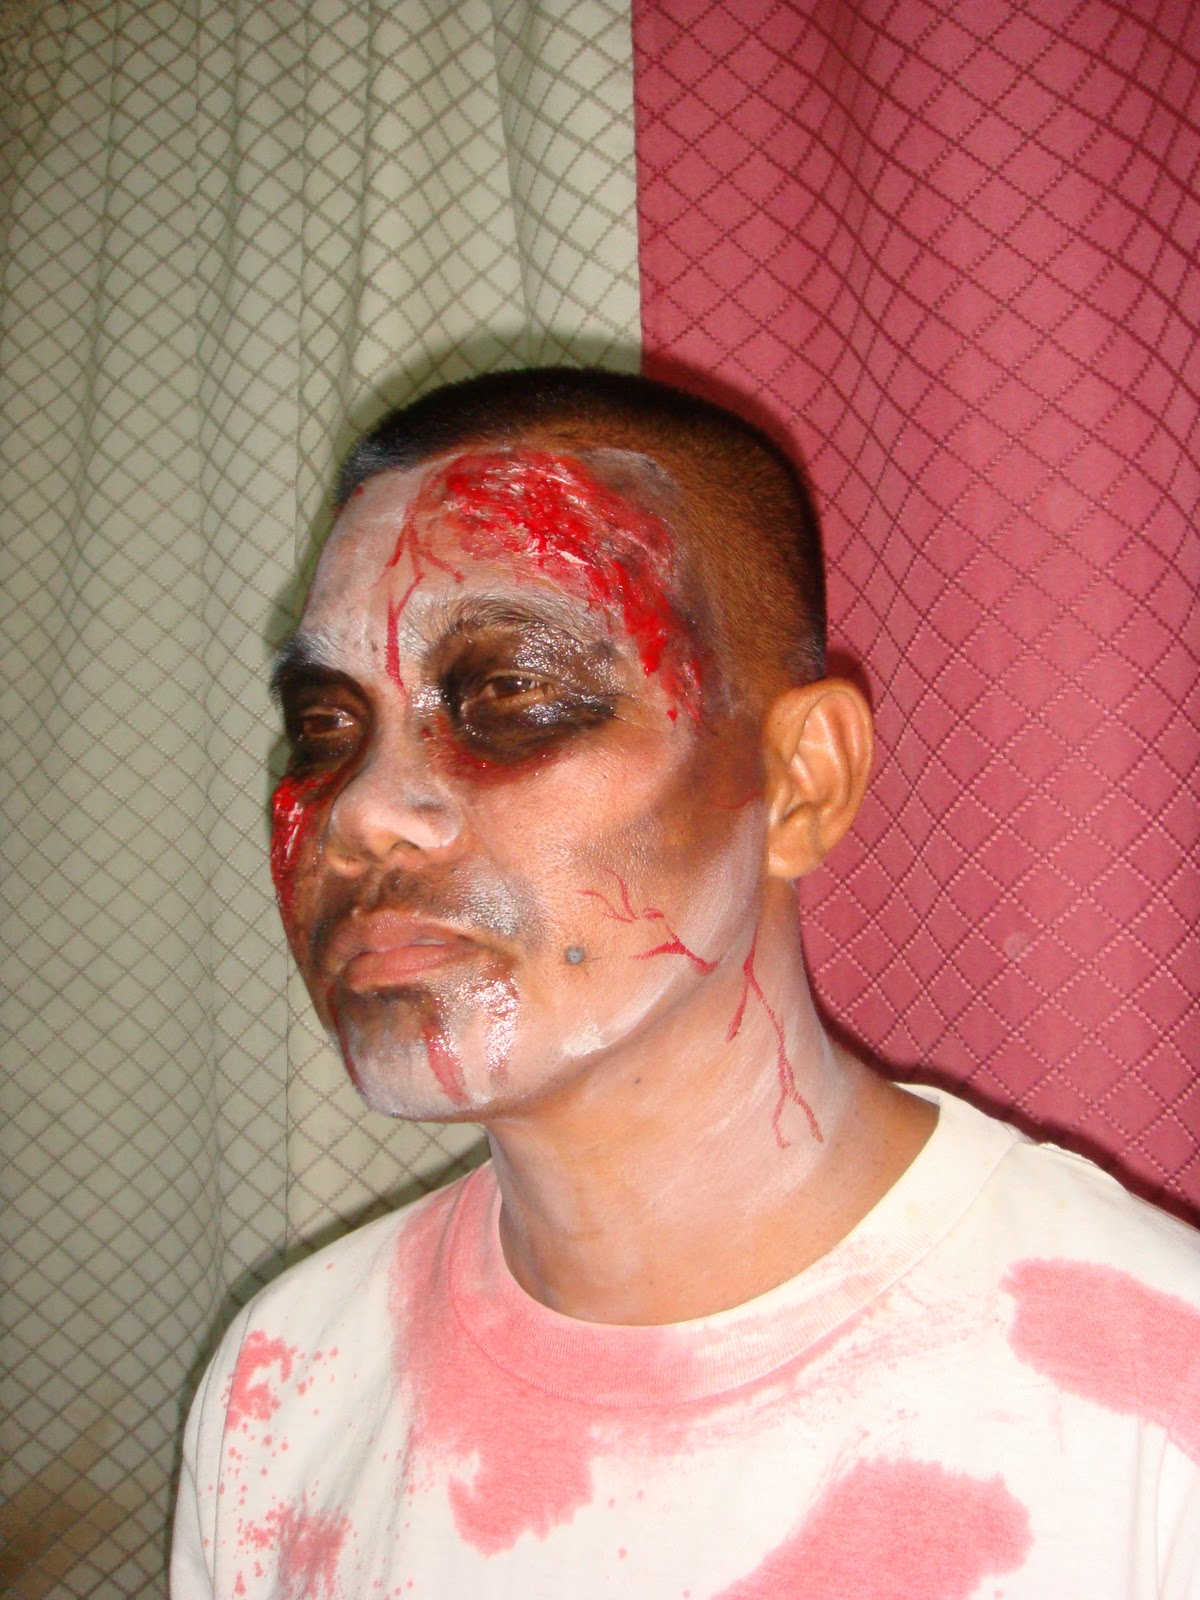 Scary Halloween Face Painting Pictures http://zbfacepainting.blogspot.com/2010/11/scary-halloween-zombies.html